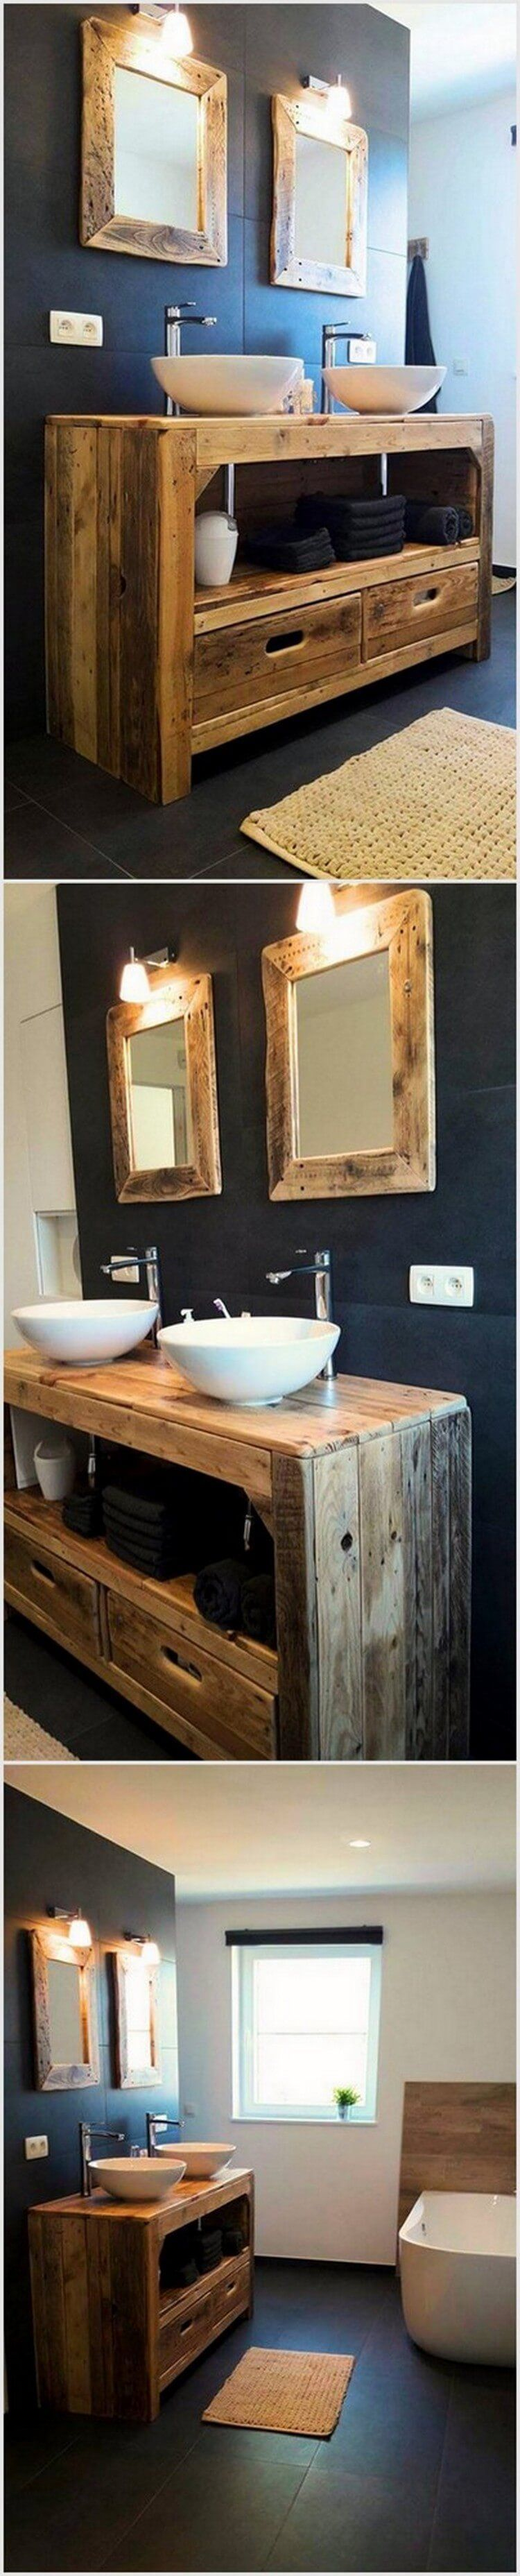 about furniture all ideas bathroom small shelf of lovely floor